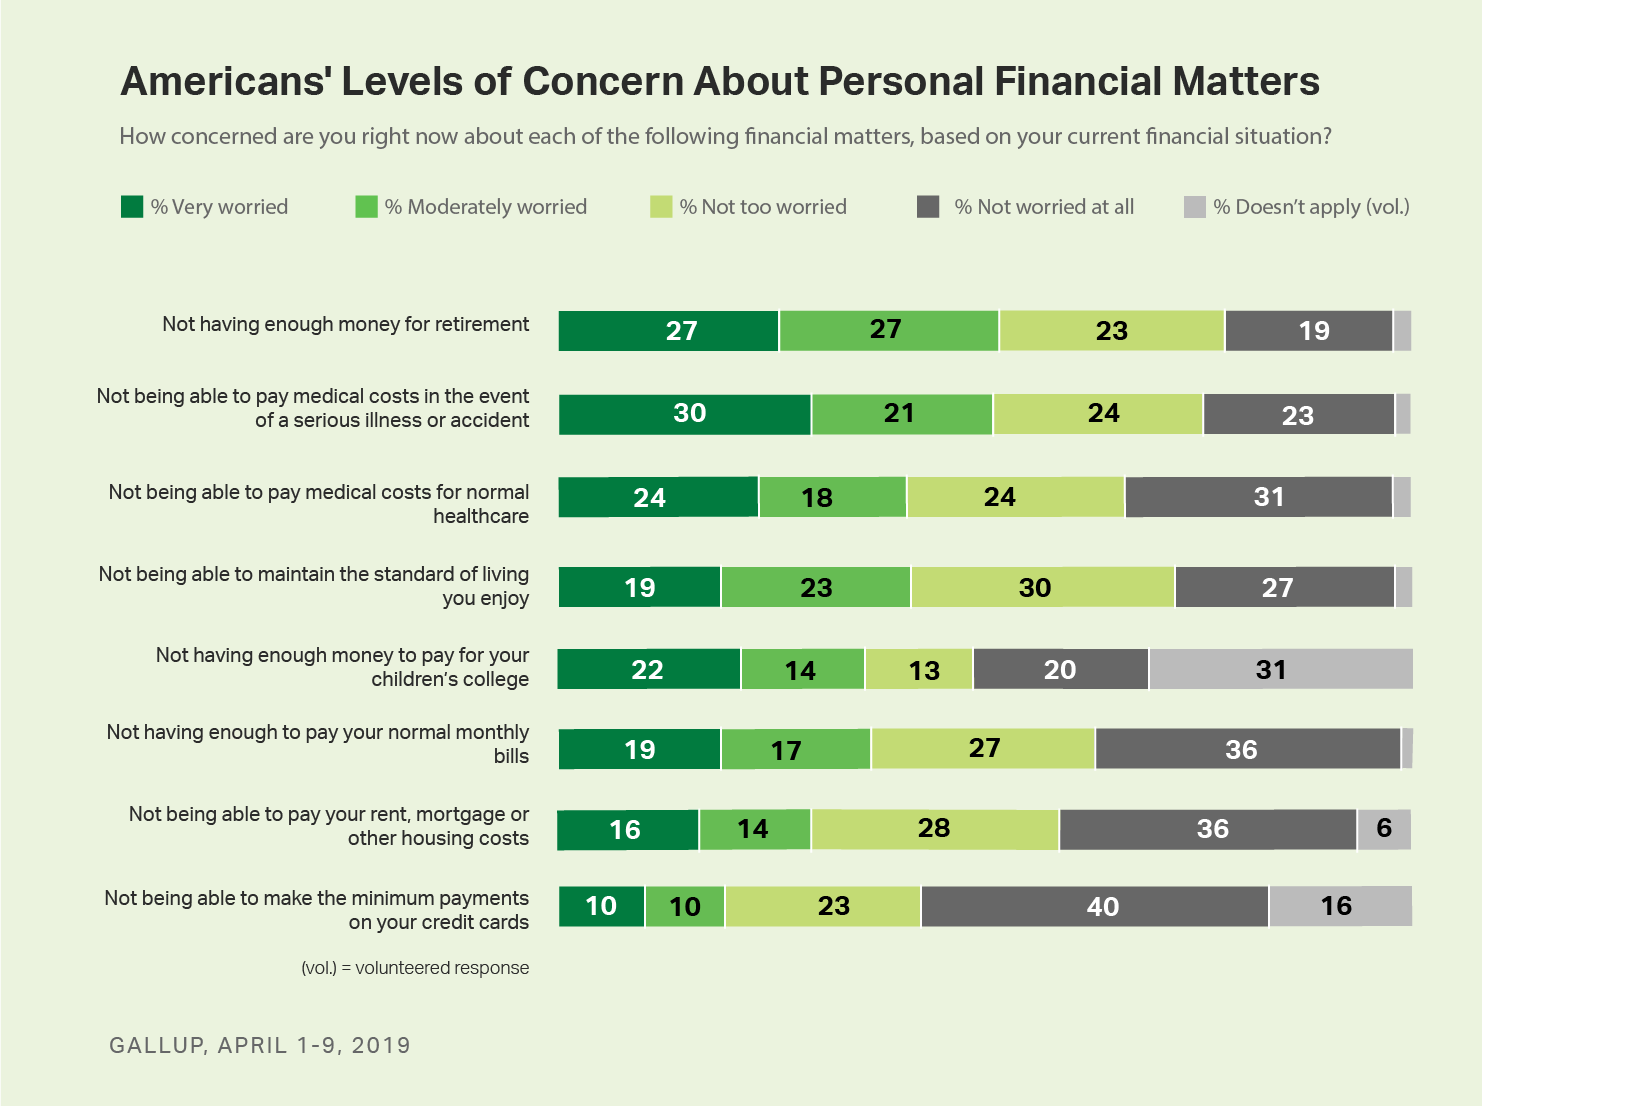 Bar charts. Americans' level of worry about 8 financial matters; retirement and emergency medical costs rank at the top.